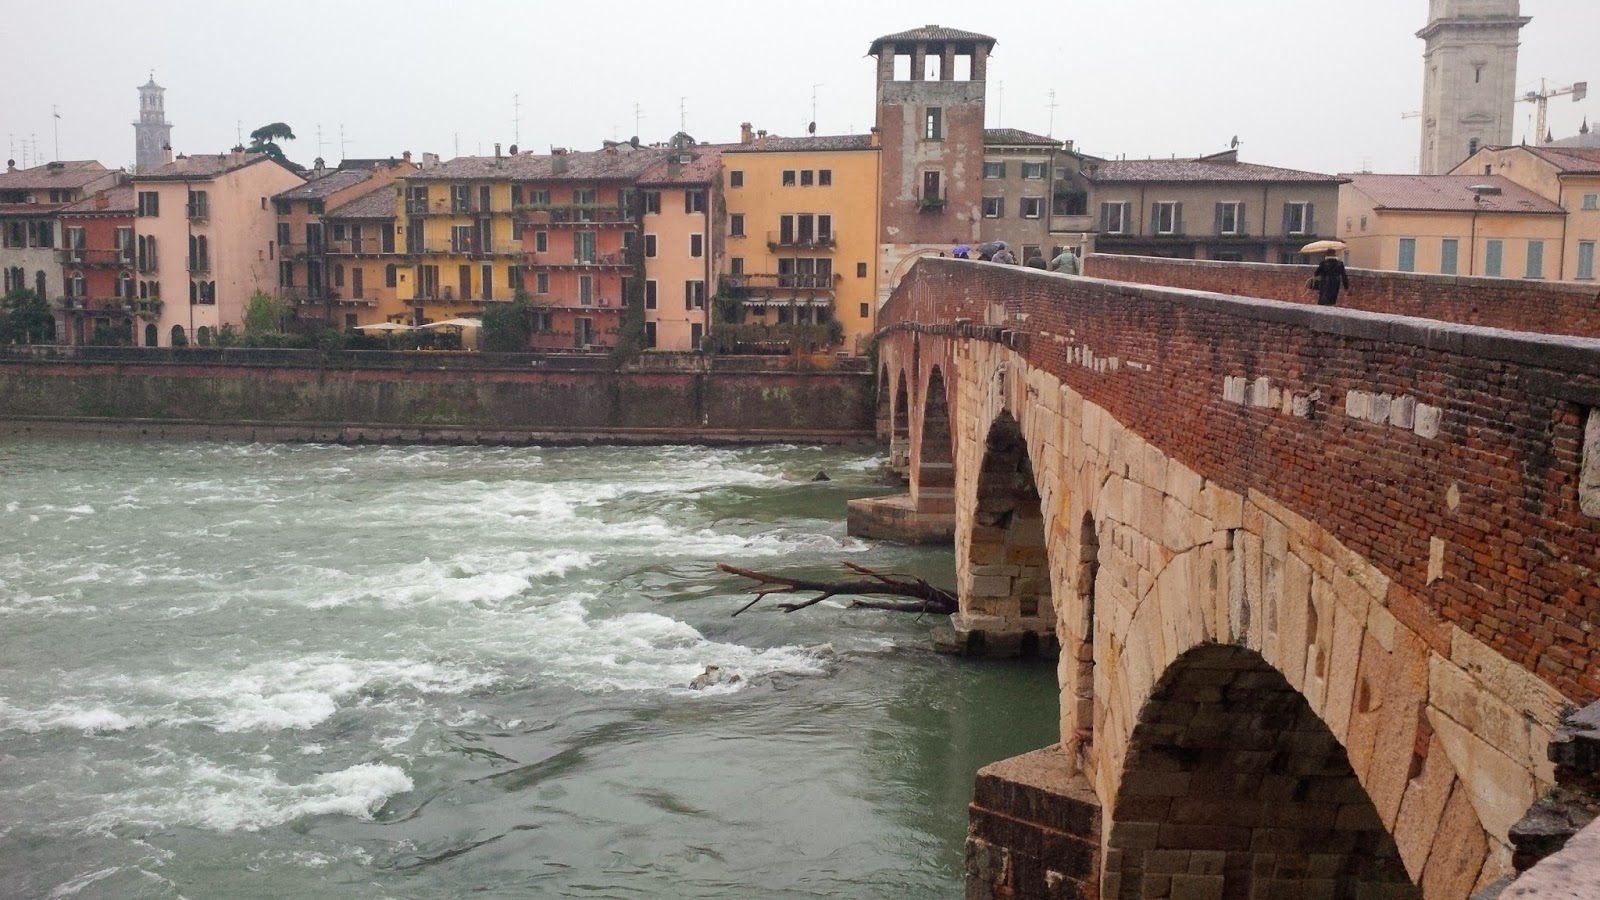 The oldest bridge in Verona - Ponte Pietra - completed by the Romans in 100 BC